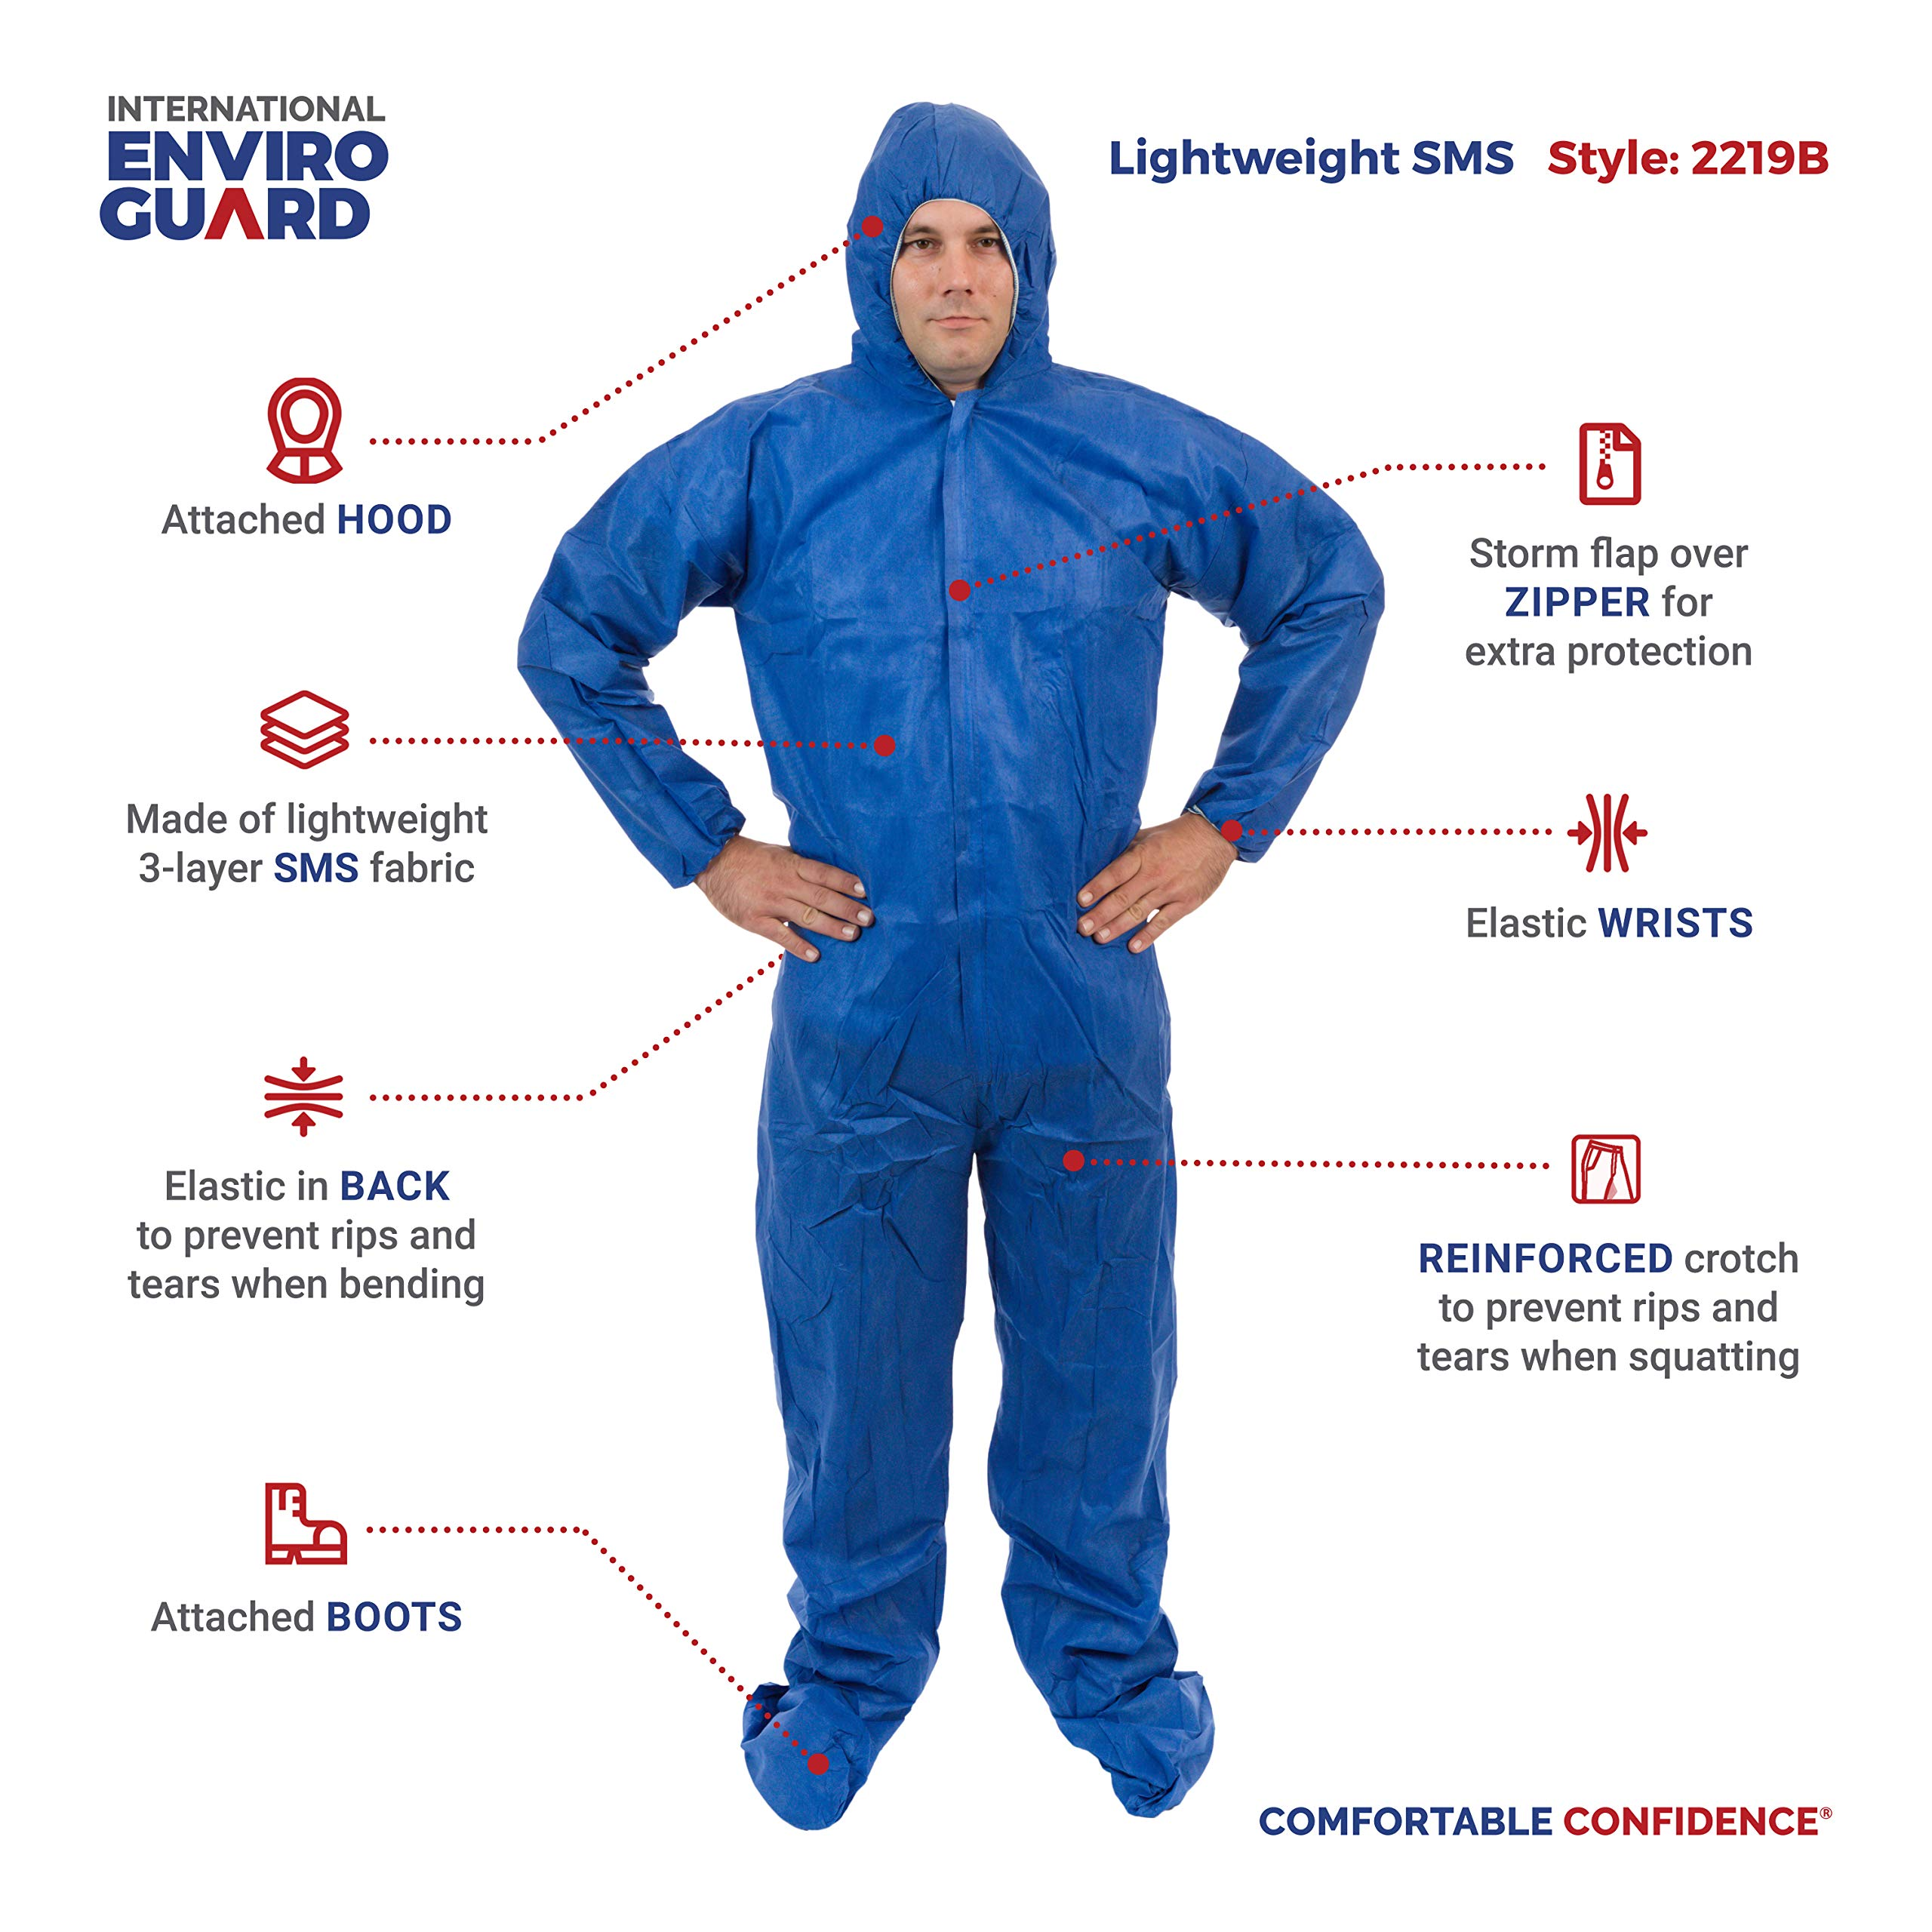 International Enviorugard – Lightweight 3 Layer SMS General Protective Coverall for General Cleanup (25 per case) (3XL, Blue) by International Enviroguard (Image #5)